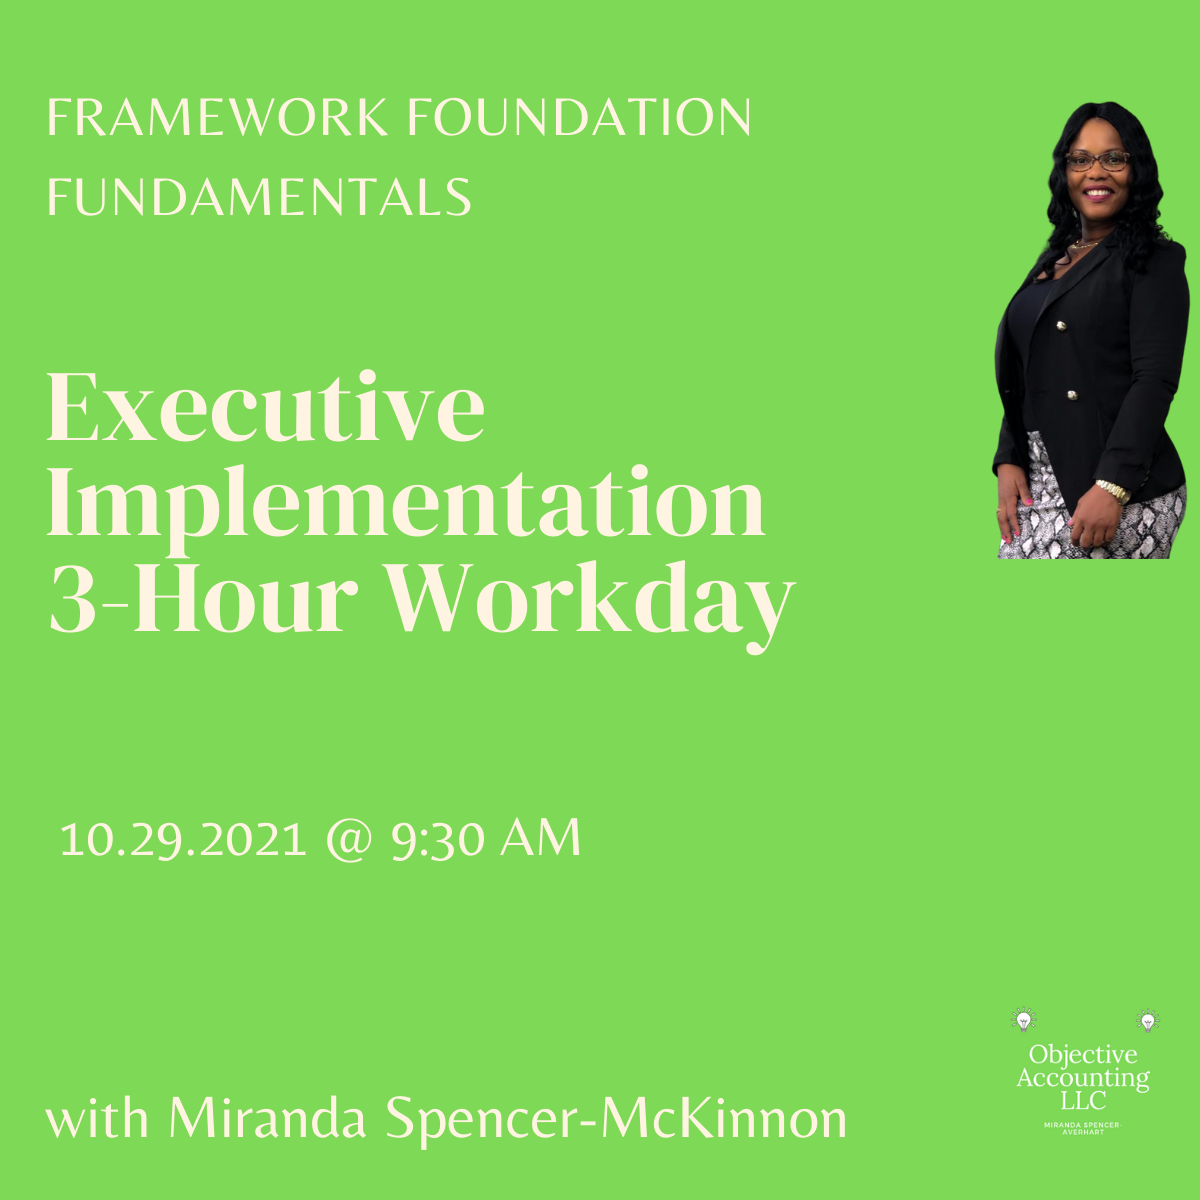 Executive Implementation Workday 10.29.2021